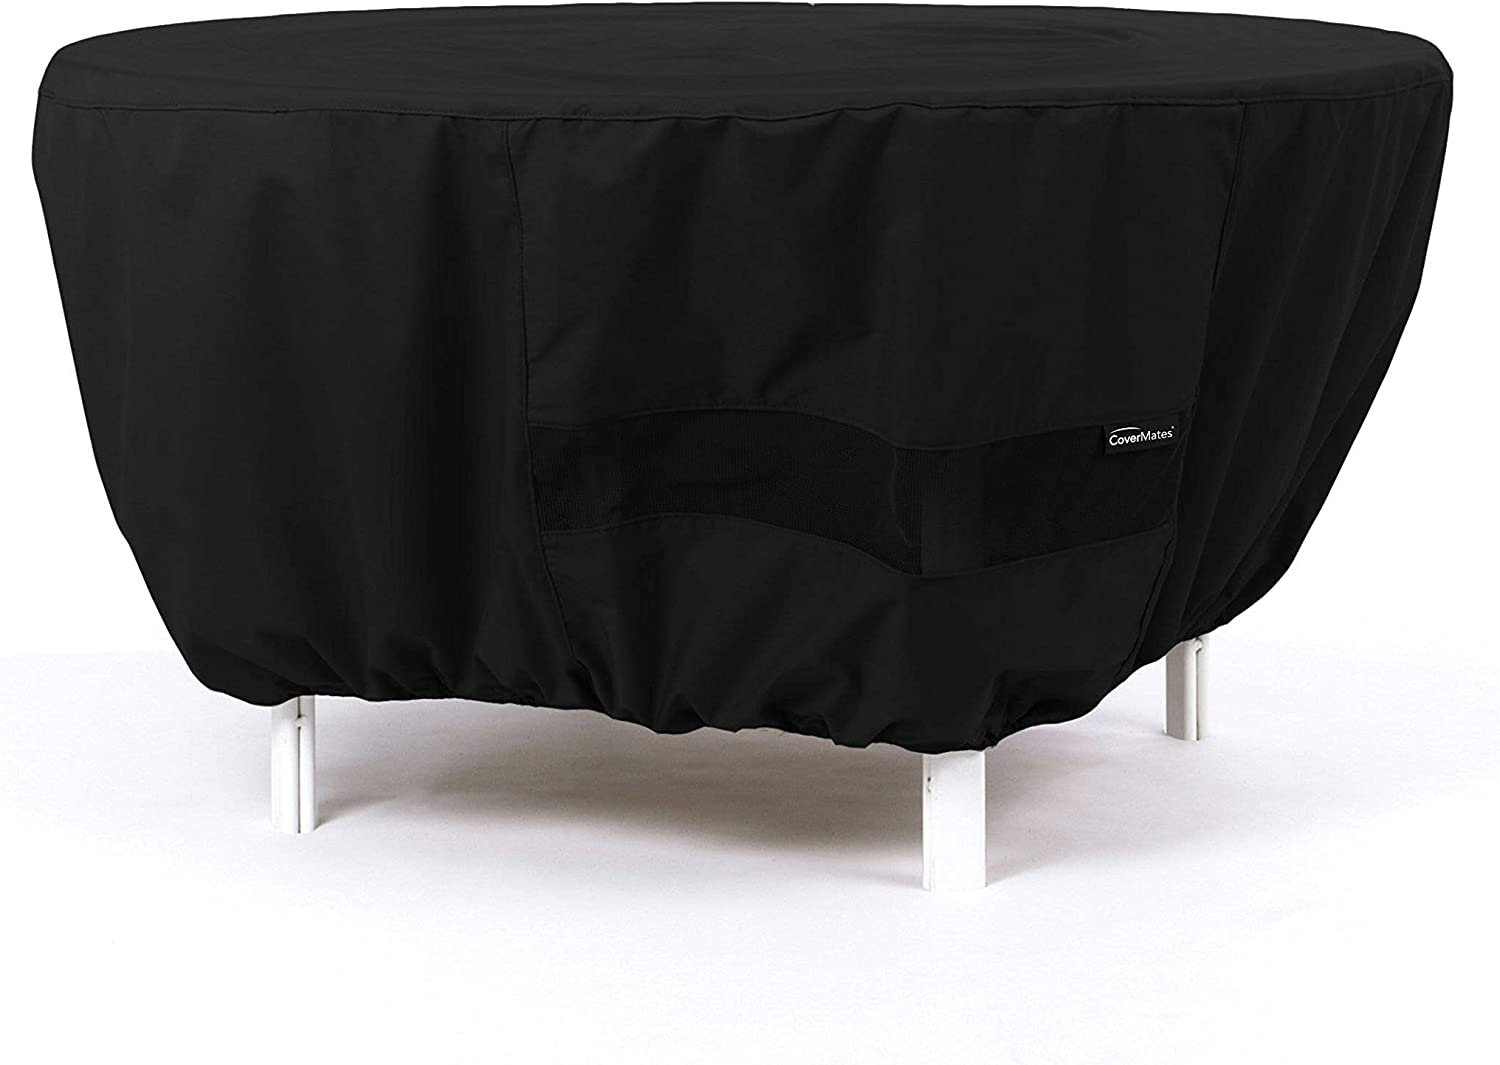 Water-Resistant Polyester Patio Table Covers Covermates Round Dining Table Cover Mesh Ventilation Black